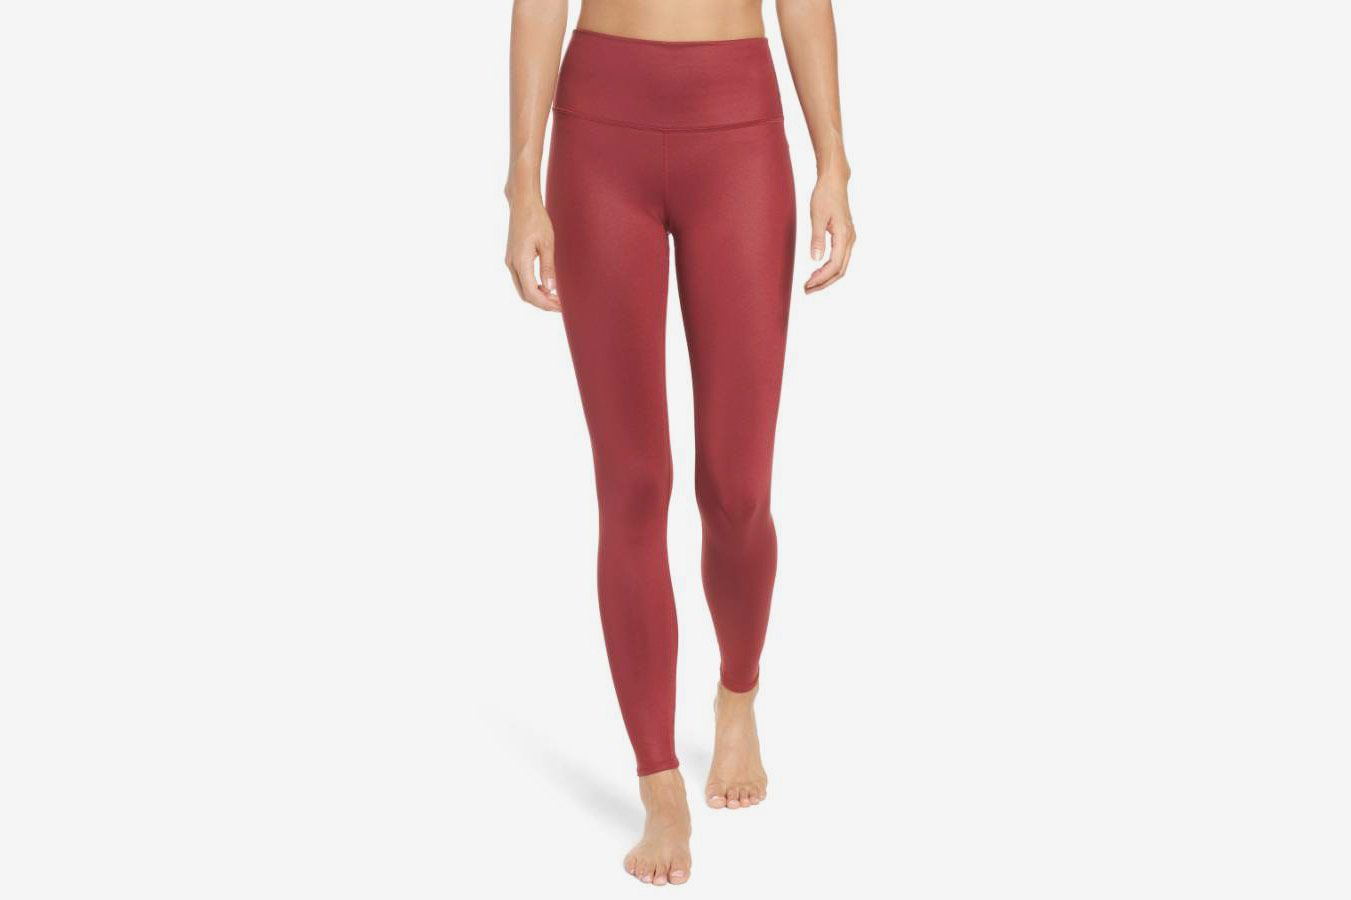 cff0a7e6bcdfc8 10 High-Waisted Leggings That are Perfect for Your Workout